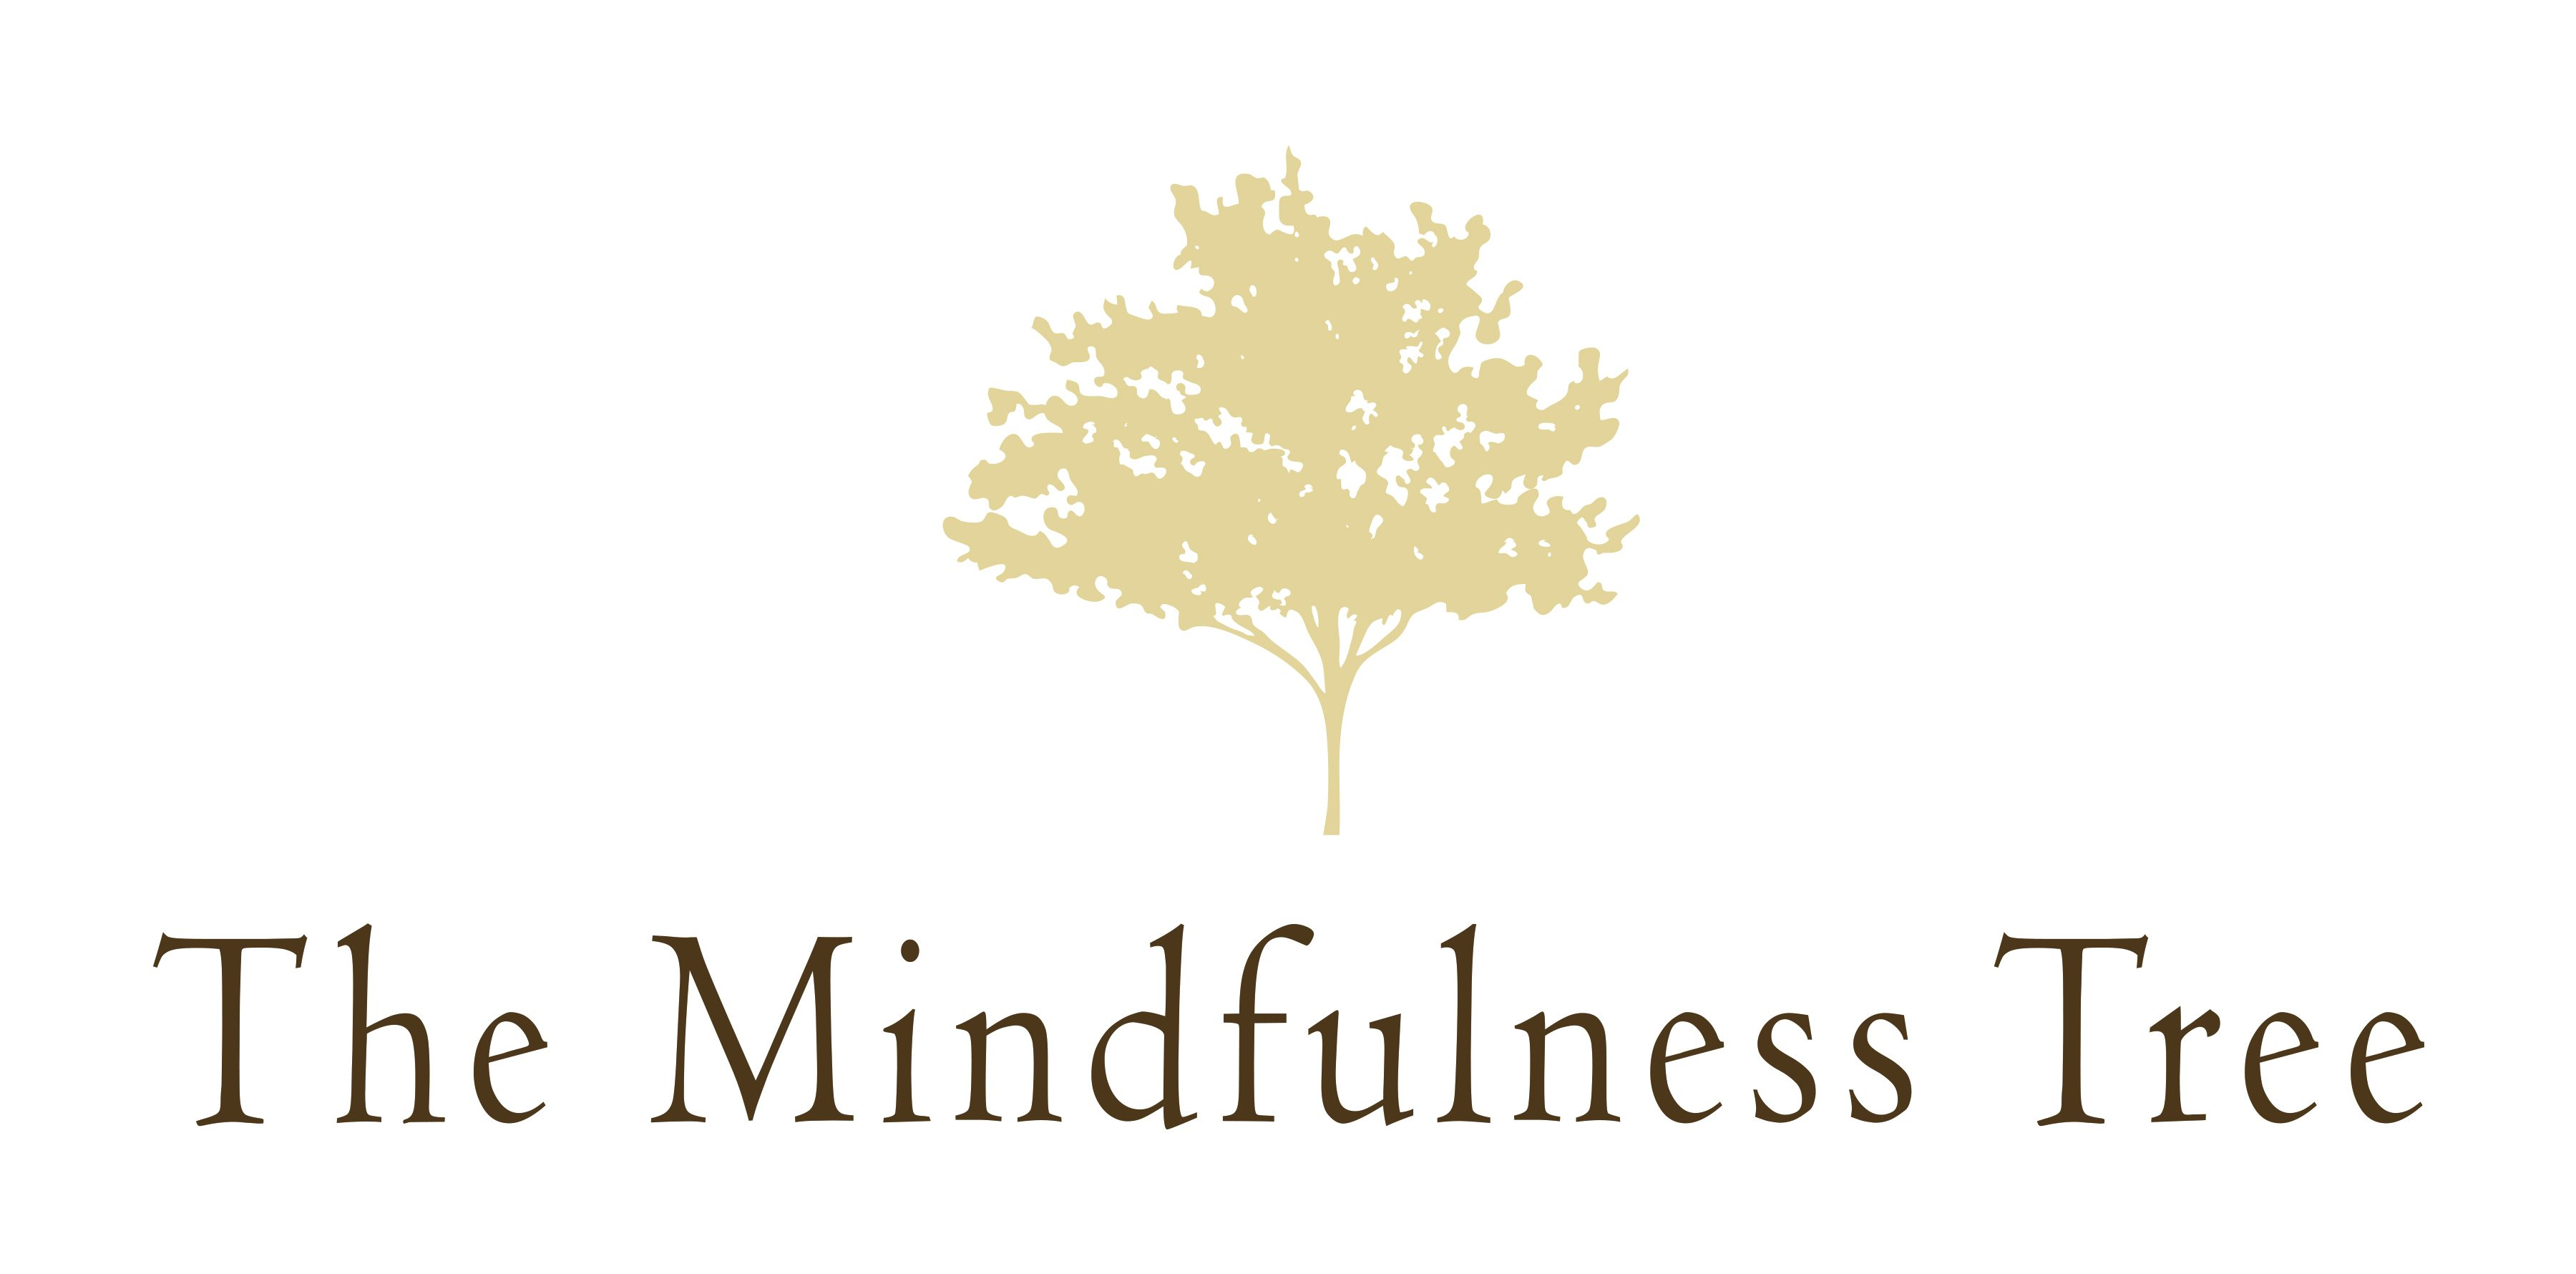 The Mindfulness Tree